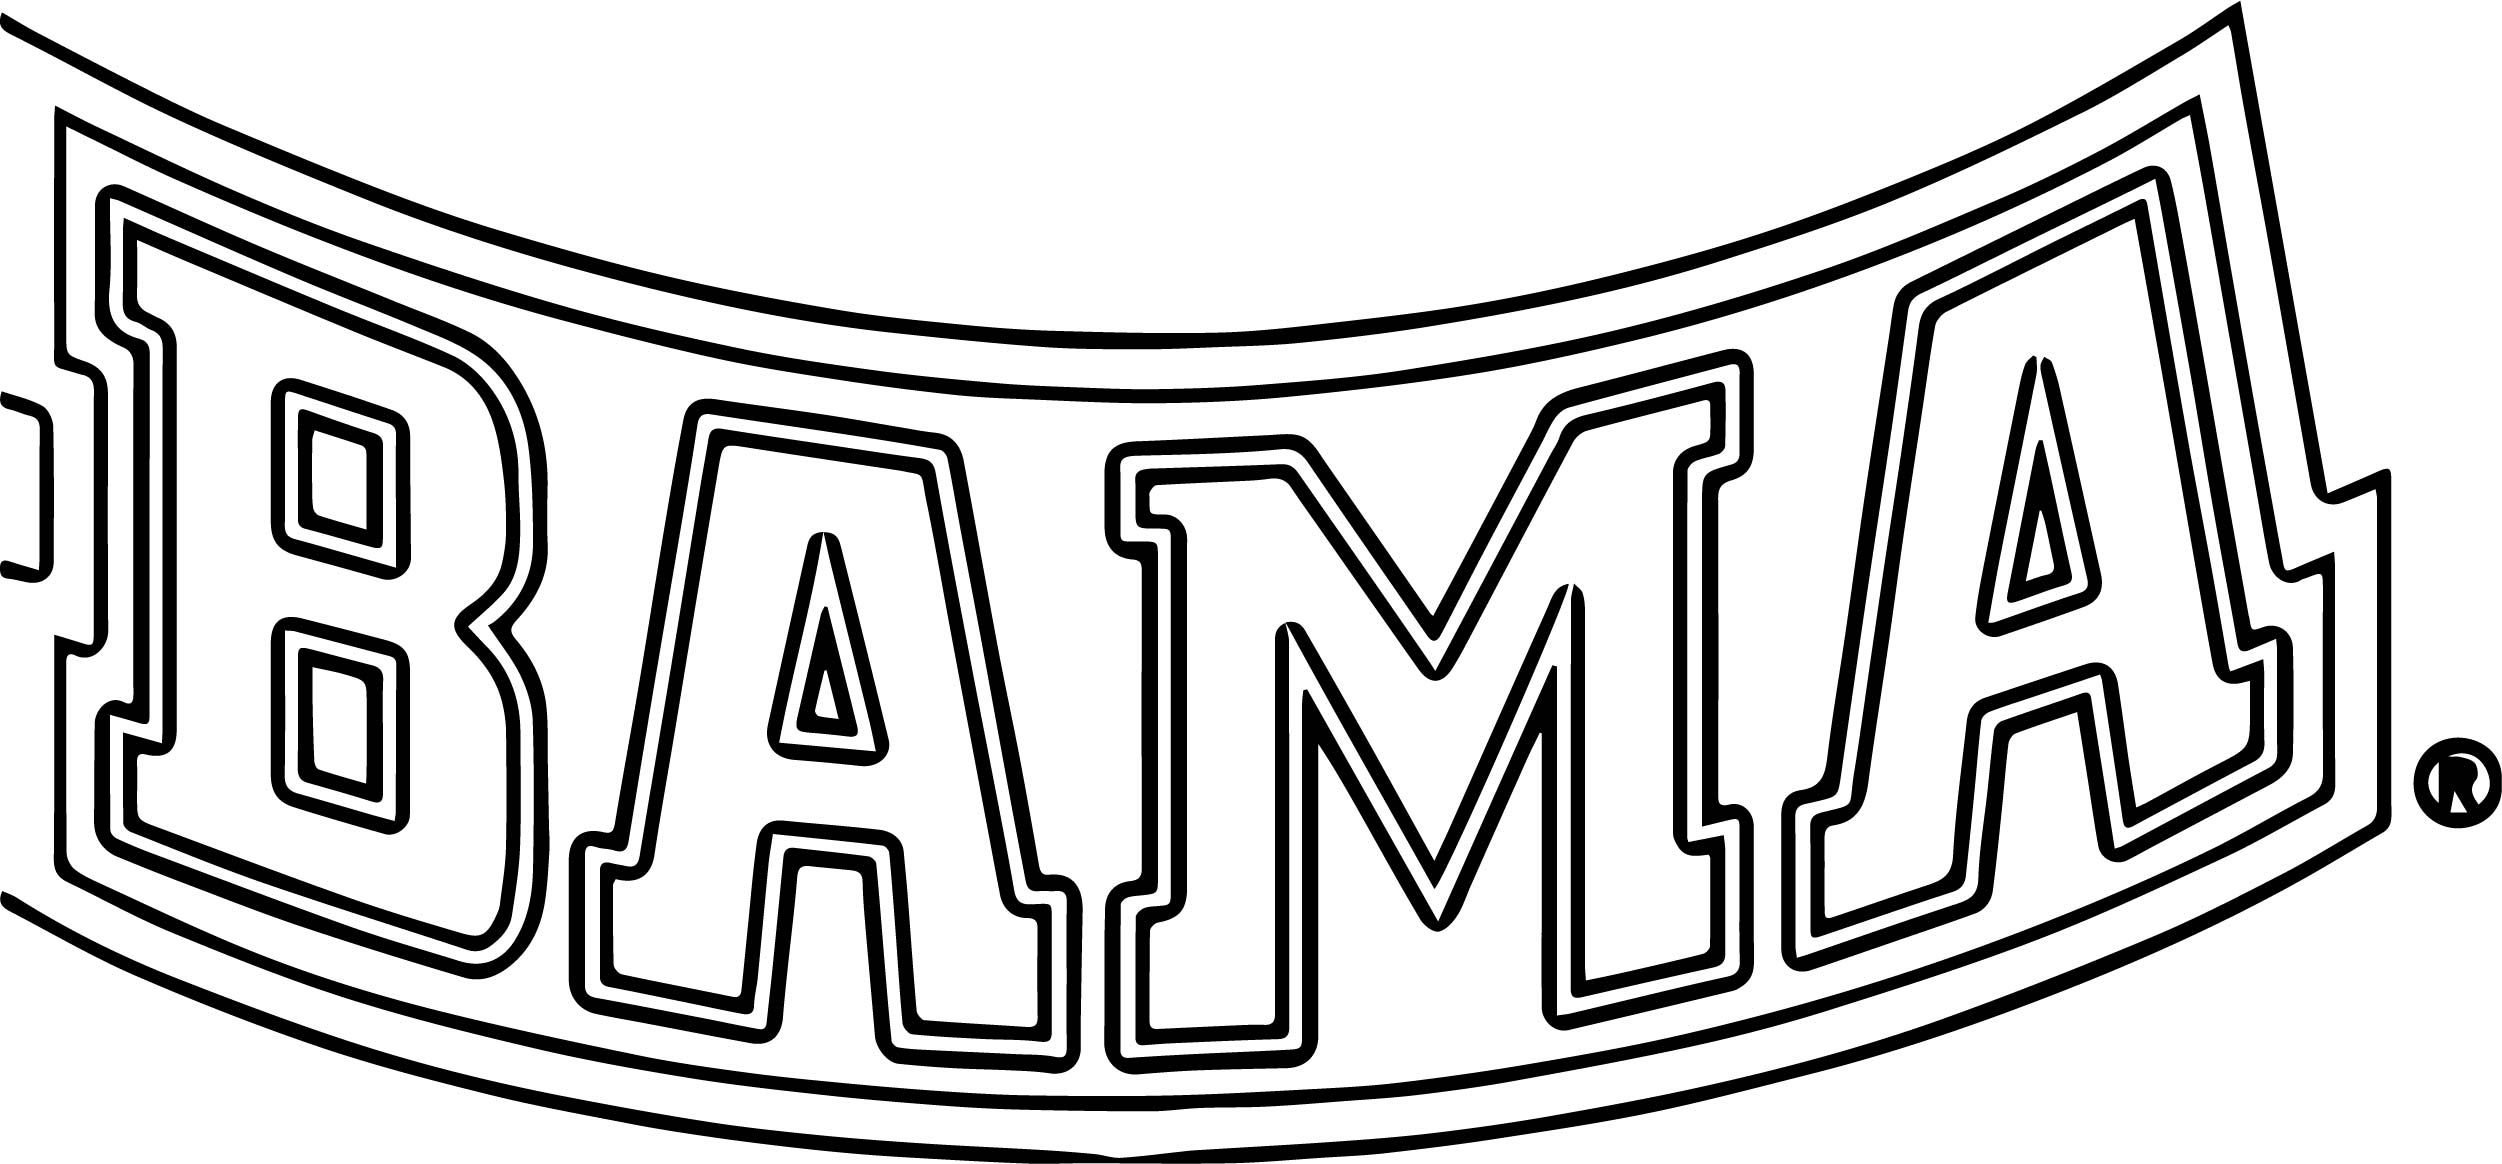 Bama Text Logo Coloring Page Coloring Pages Drawing Quotes Text Logo